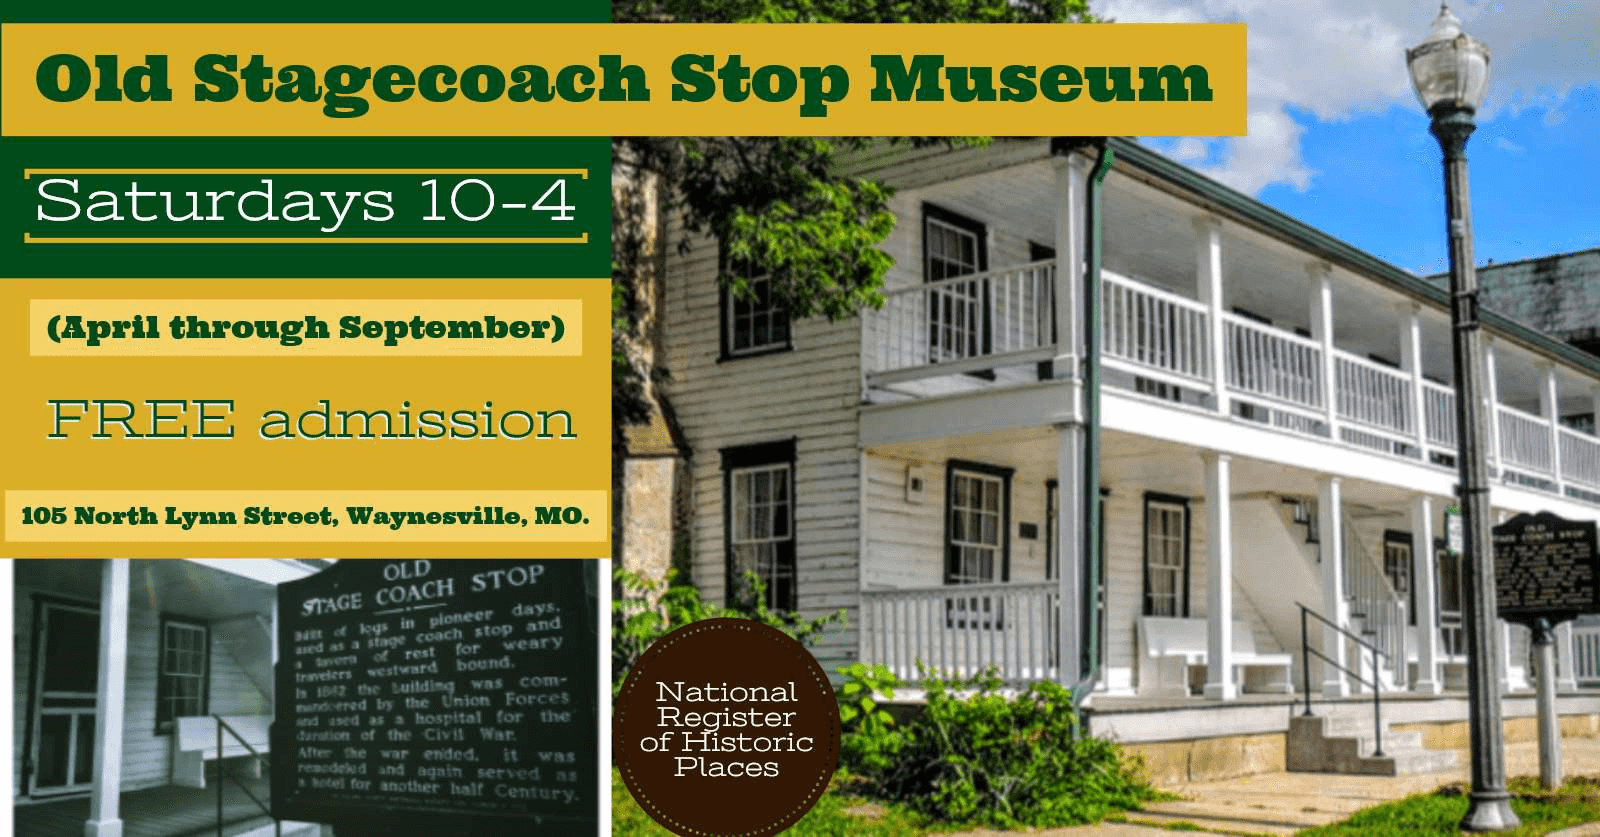 Old Stagecoach Museum On the Square Waynesville Missouri